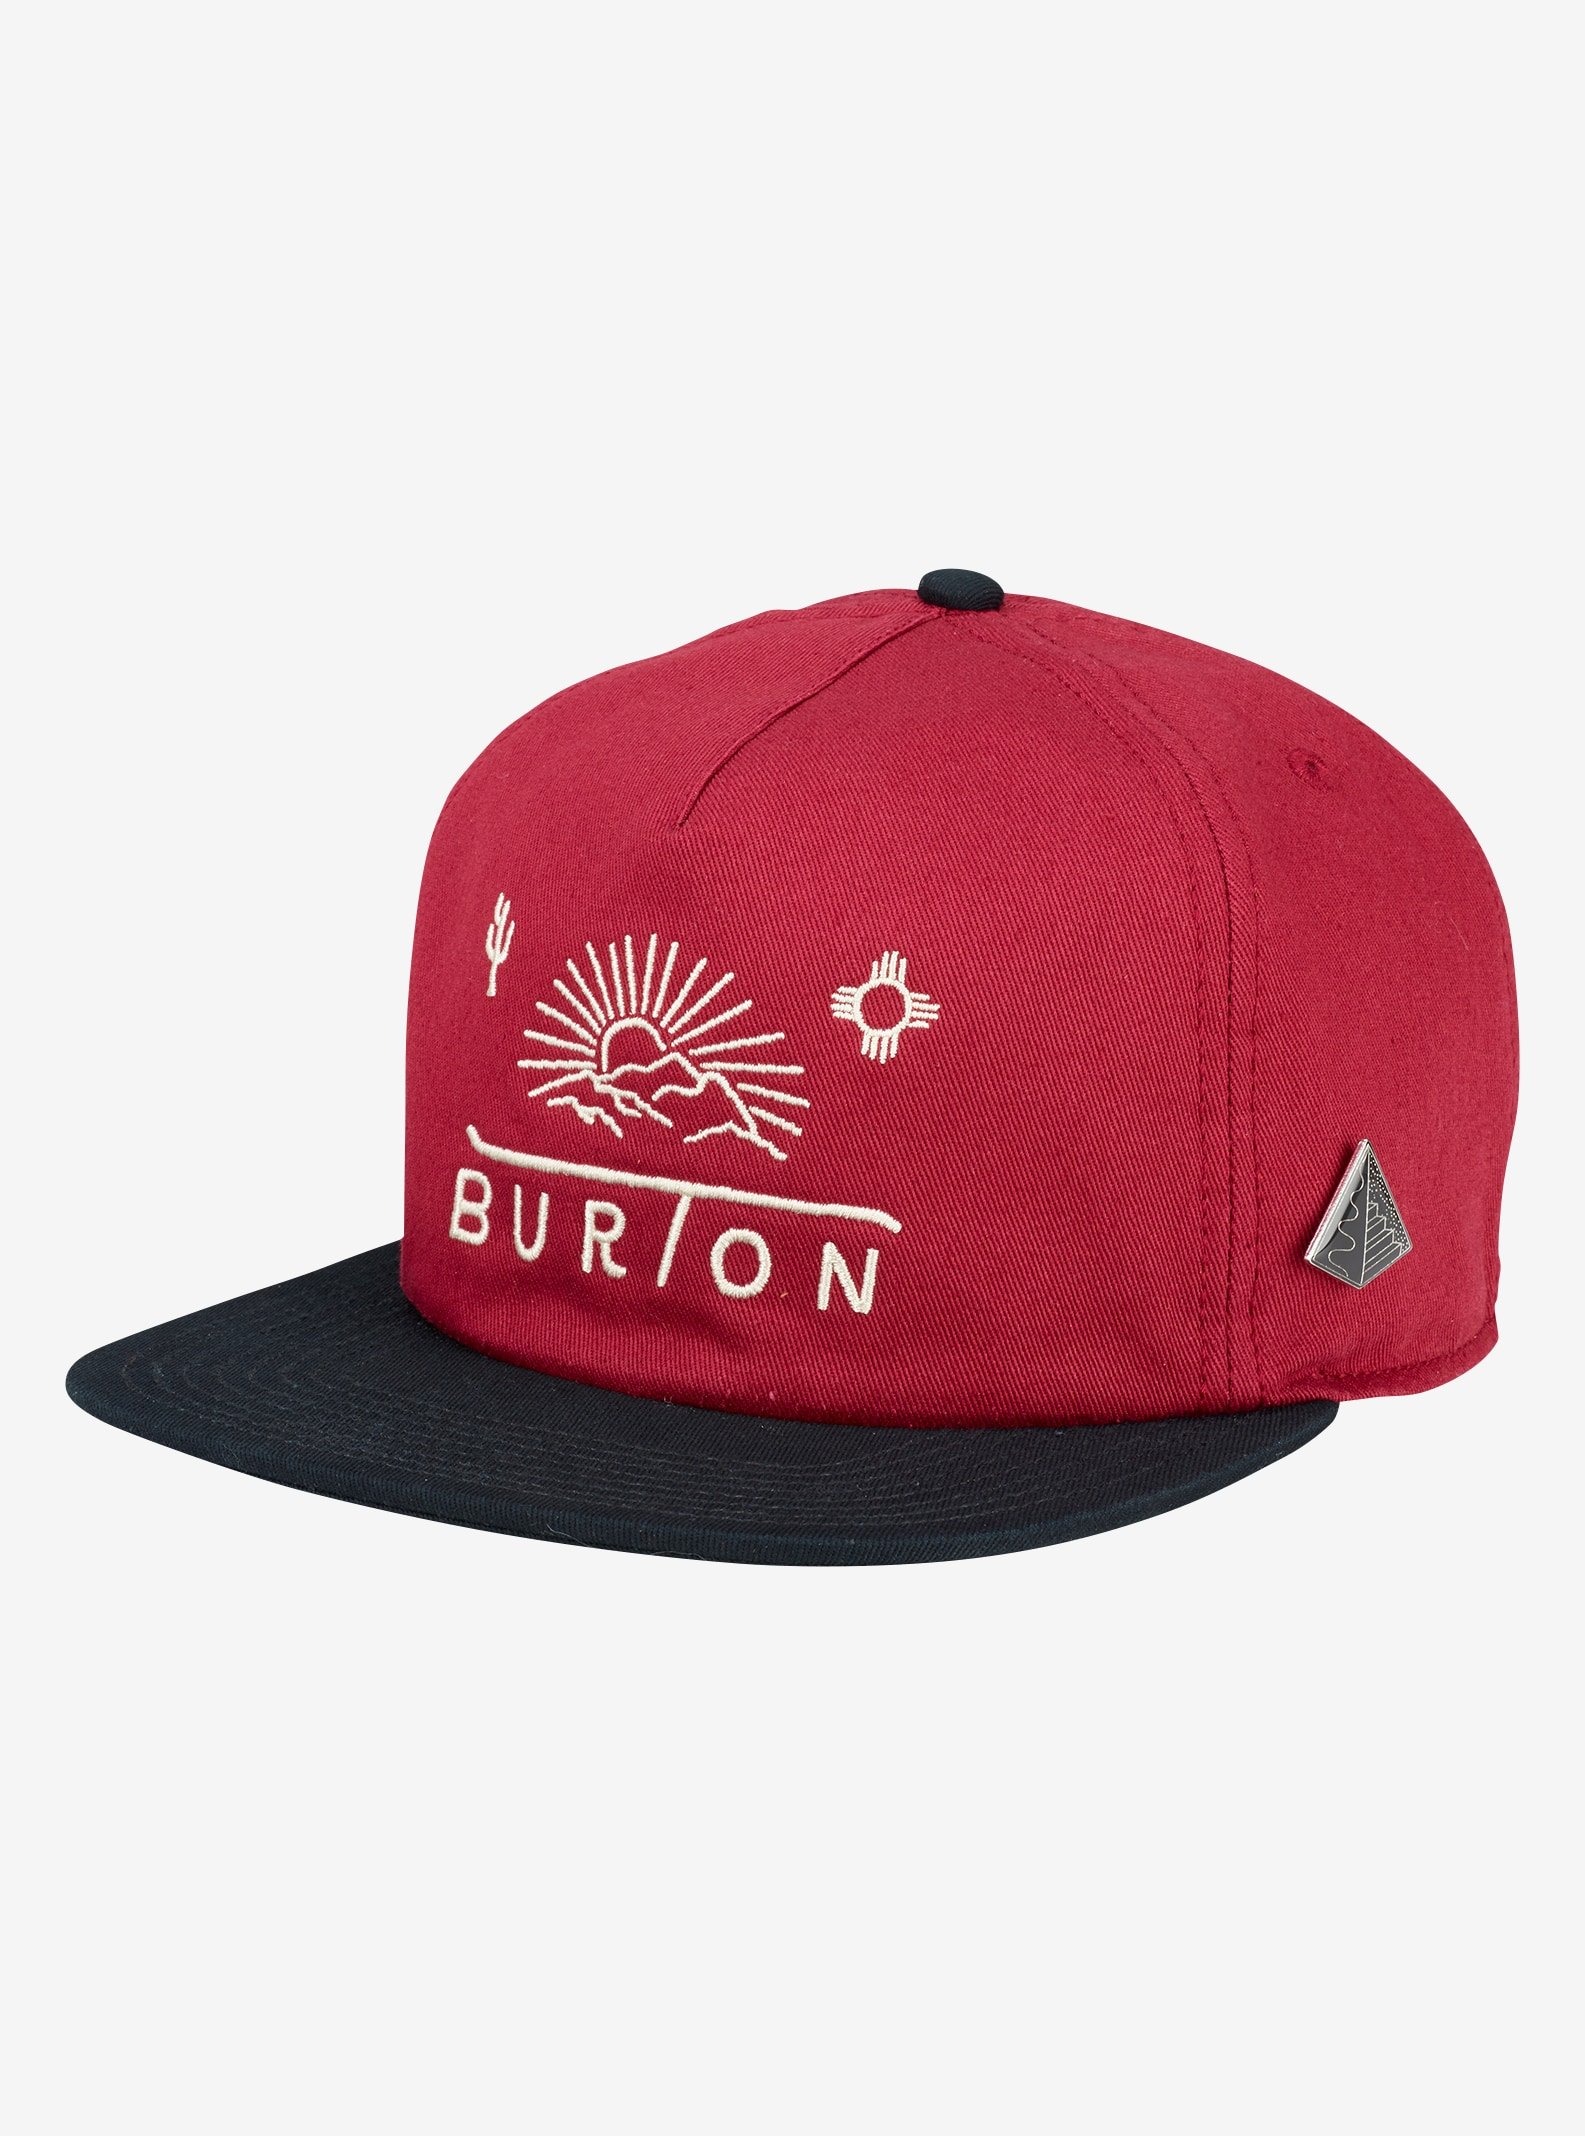 Men's Burton Sun Rise Cap shown in Fired Brick